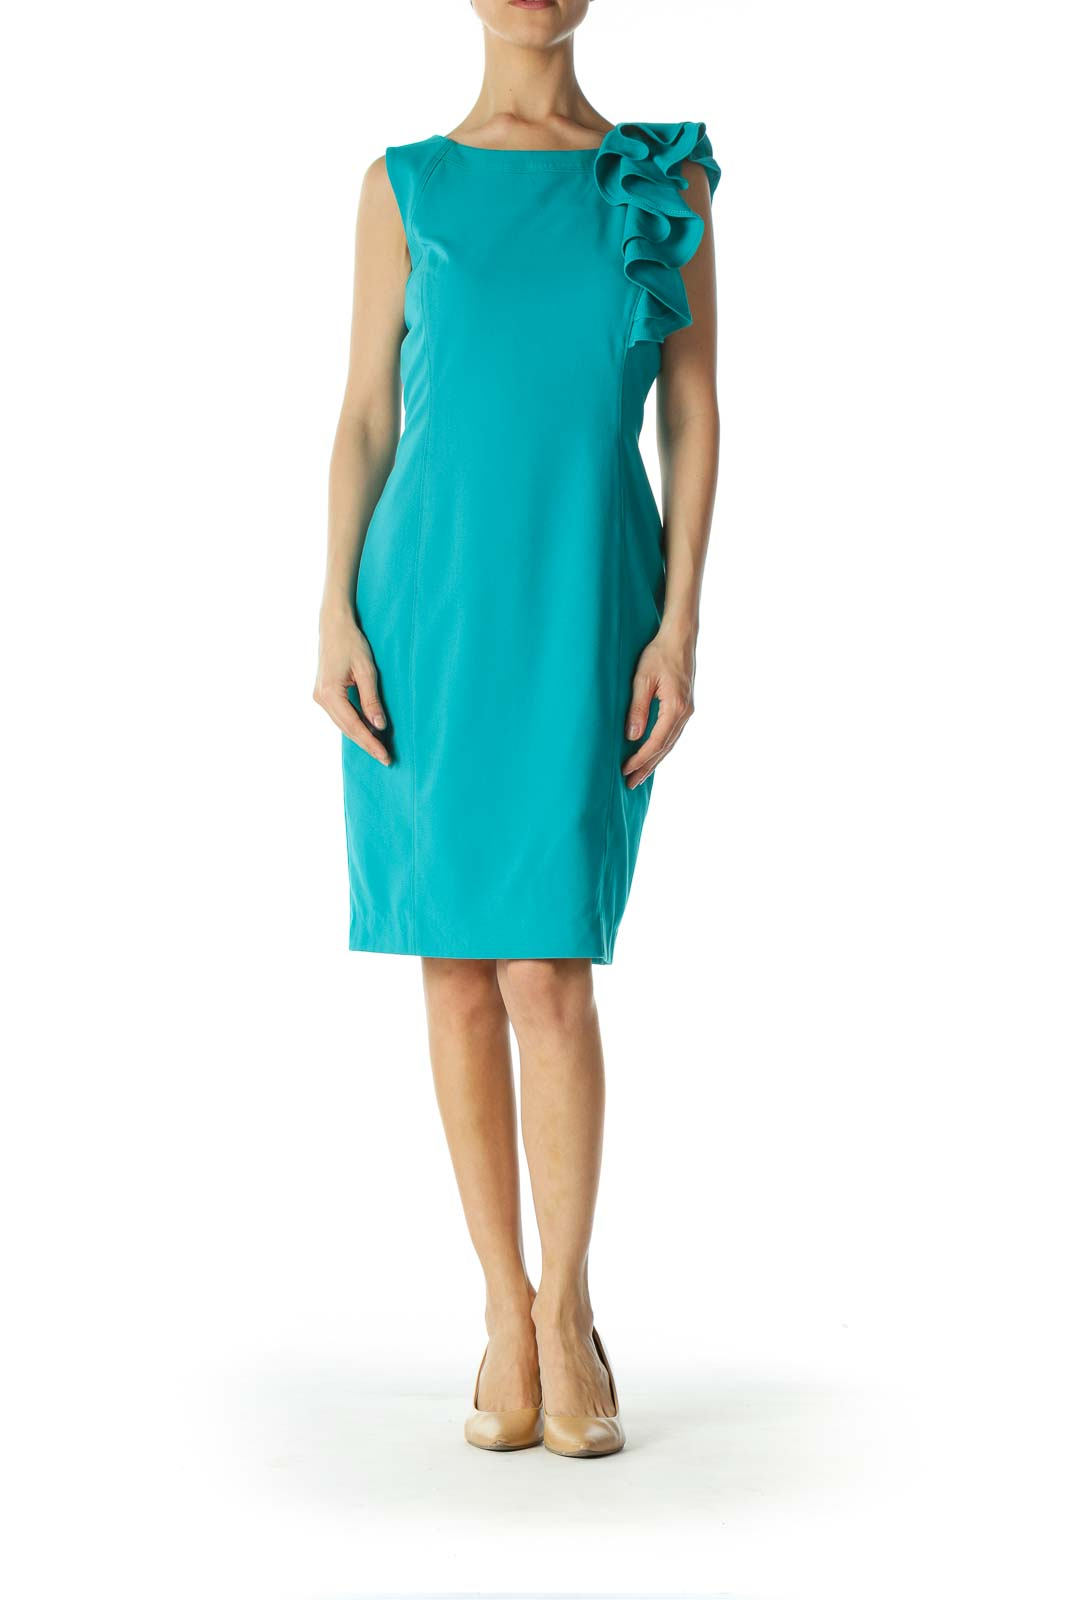 Teal Blue Front Ruffle Accent Work Dress